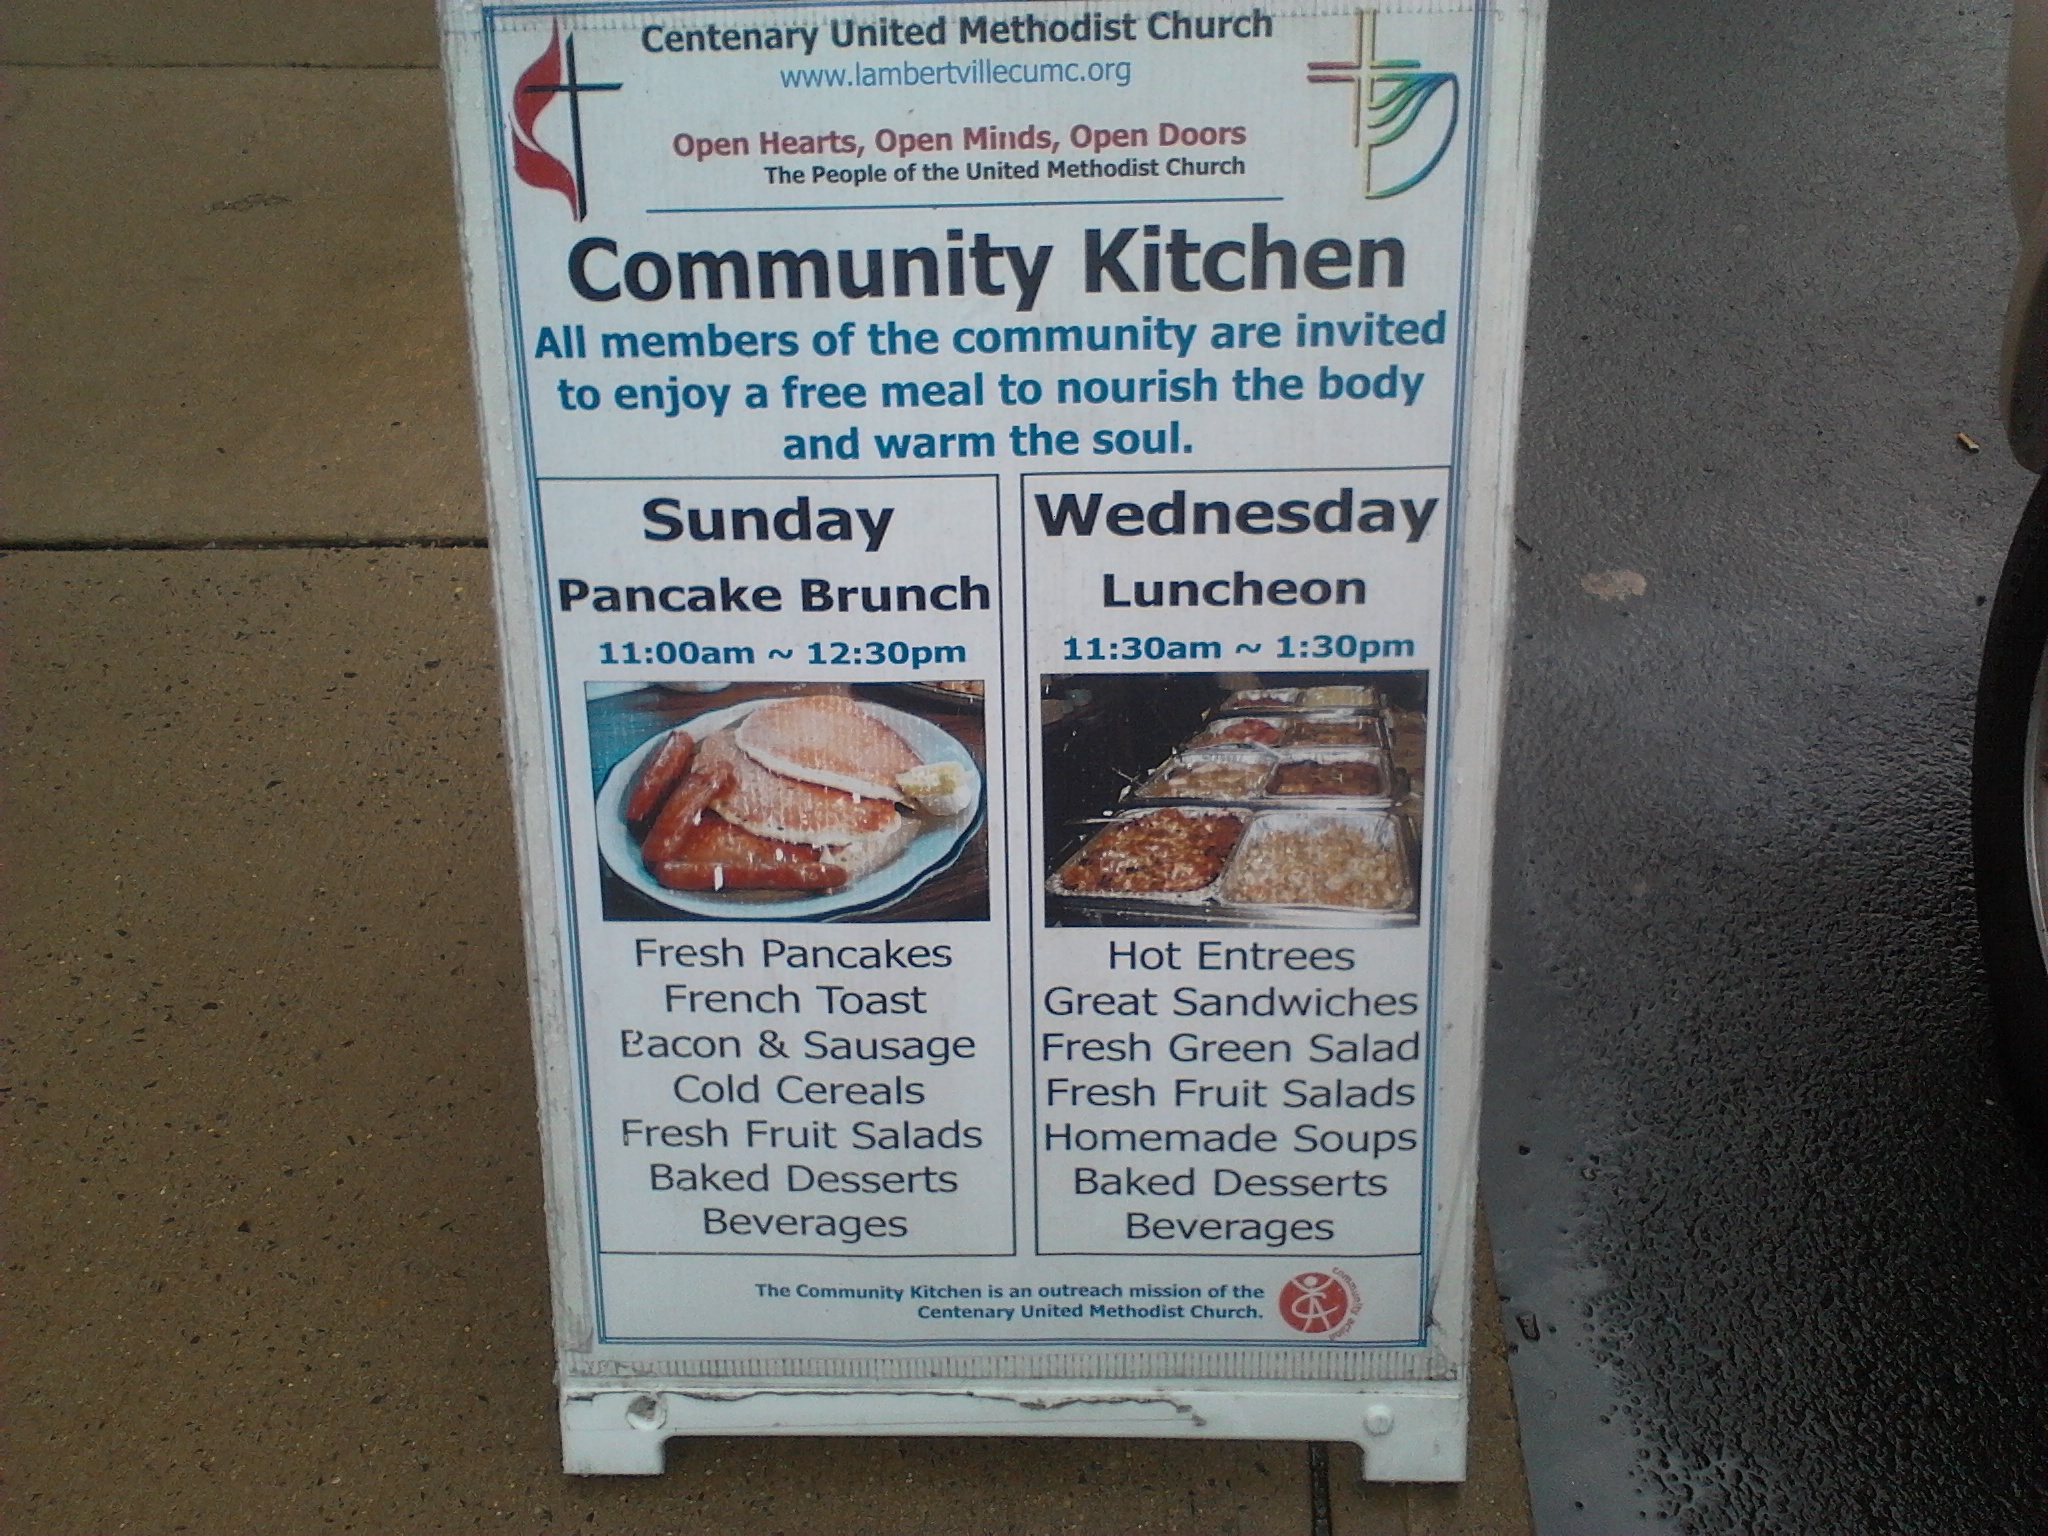 NEW JERSEY HOMELESS SHELTERS, FOOD PANTRIES AND MORE